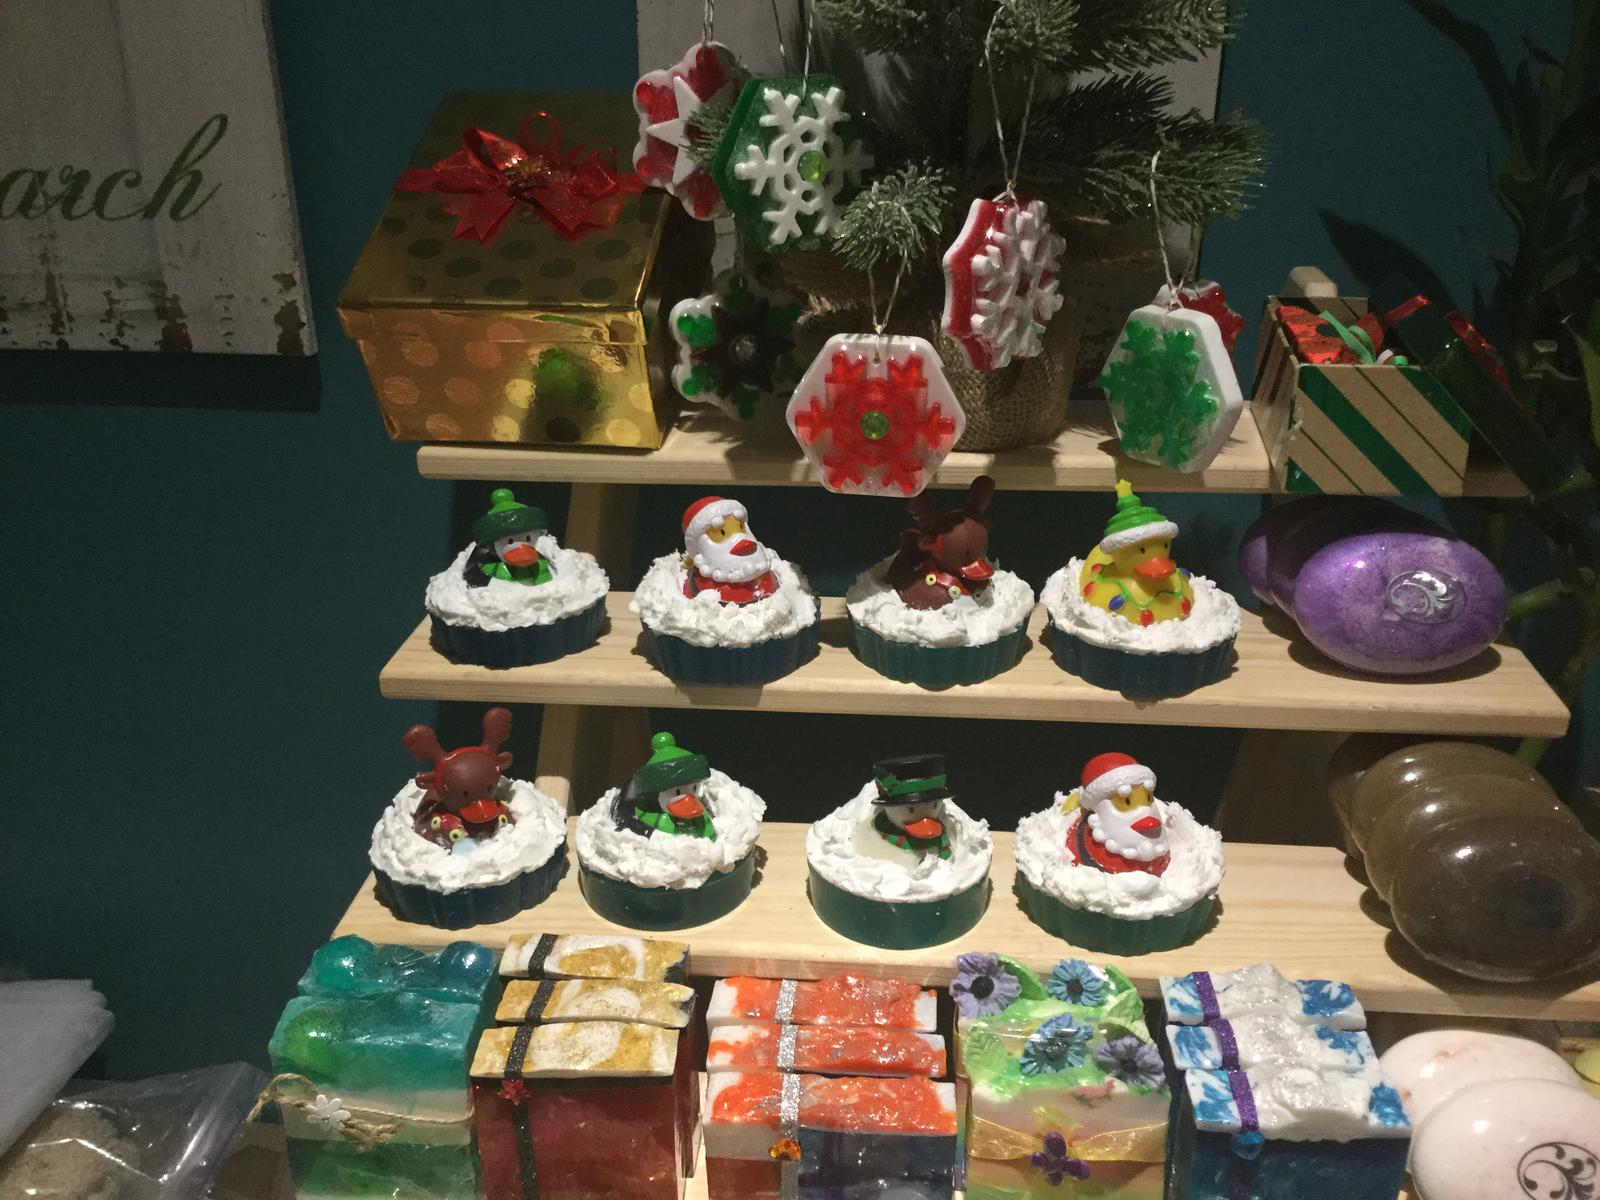 Chrissy Soap Decorations